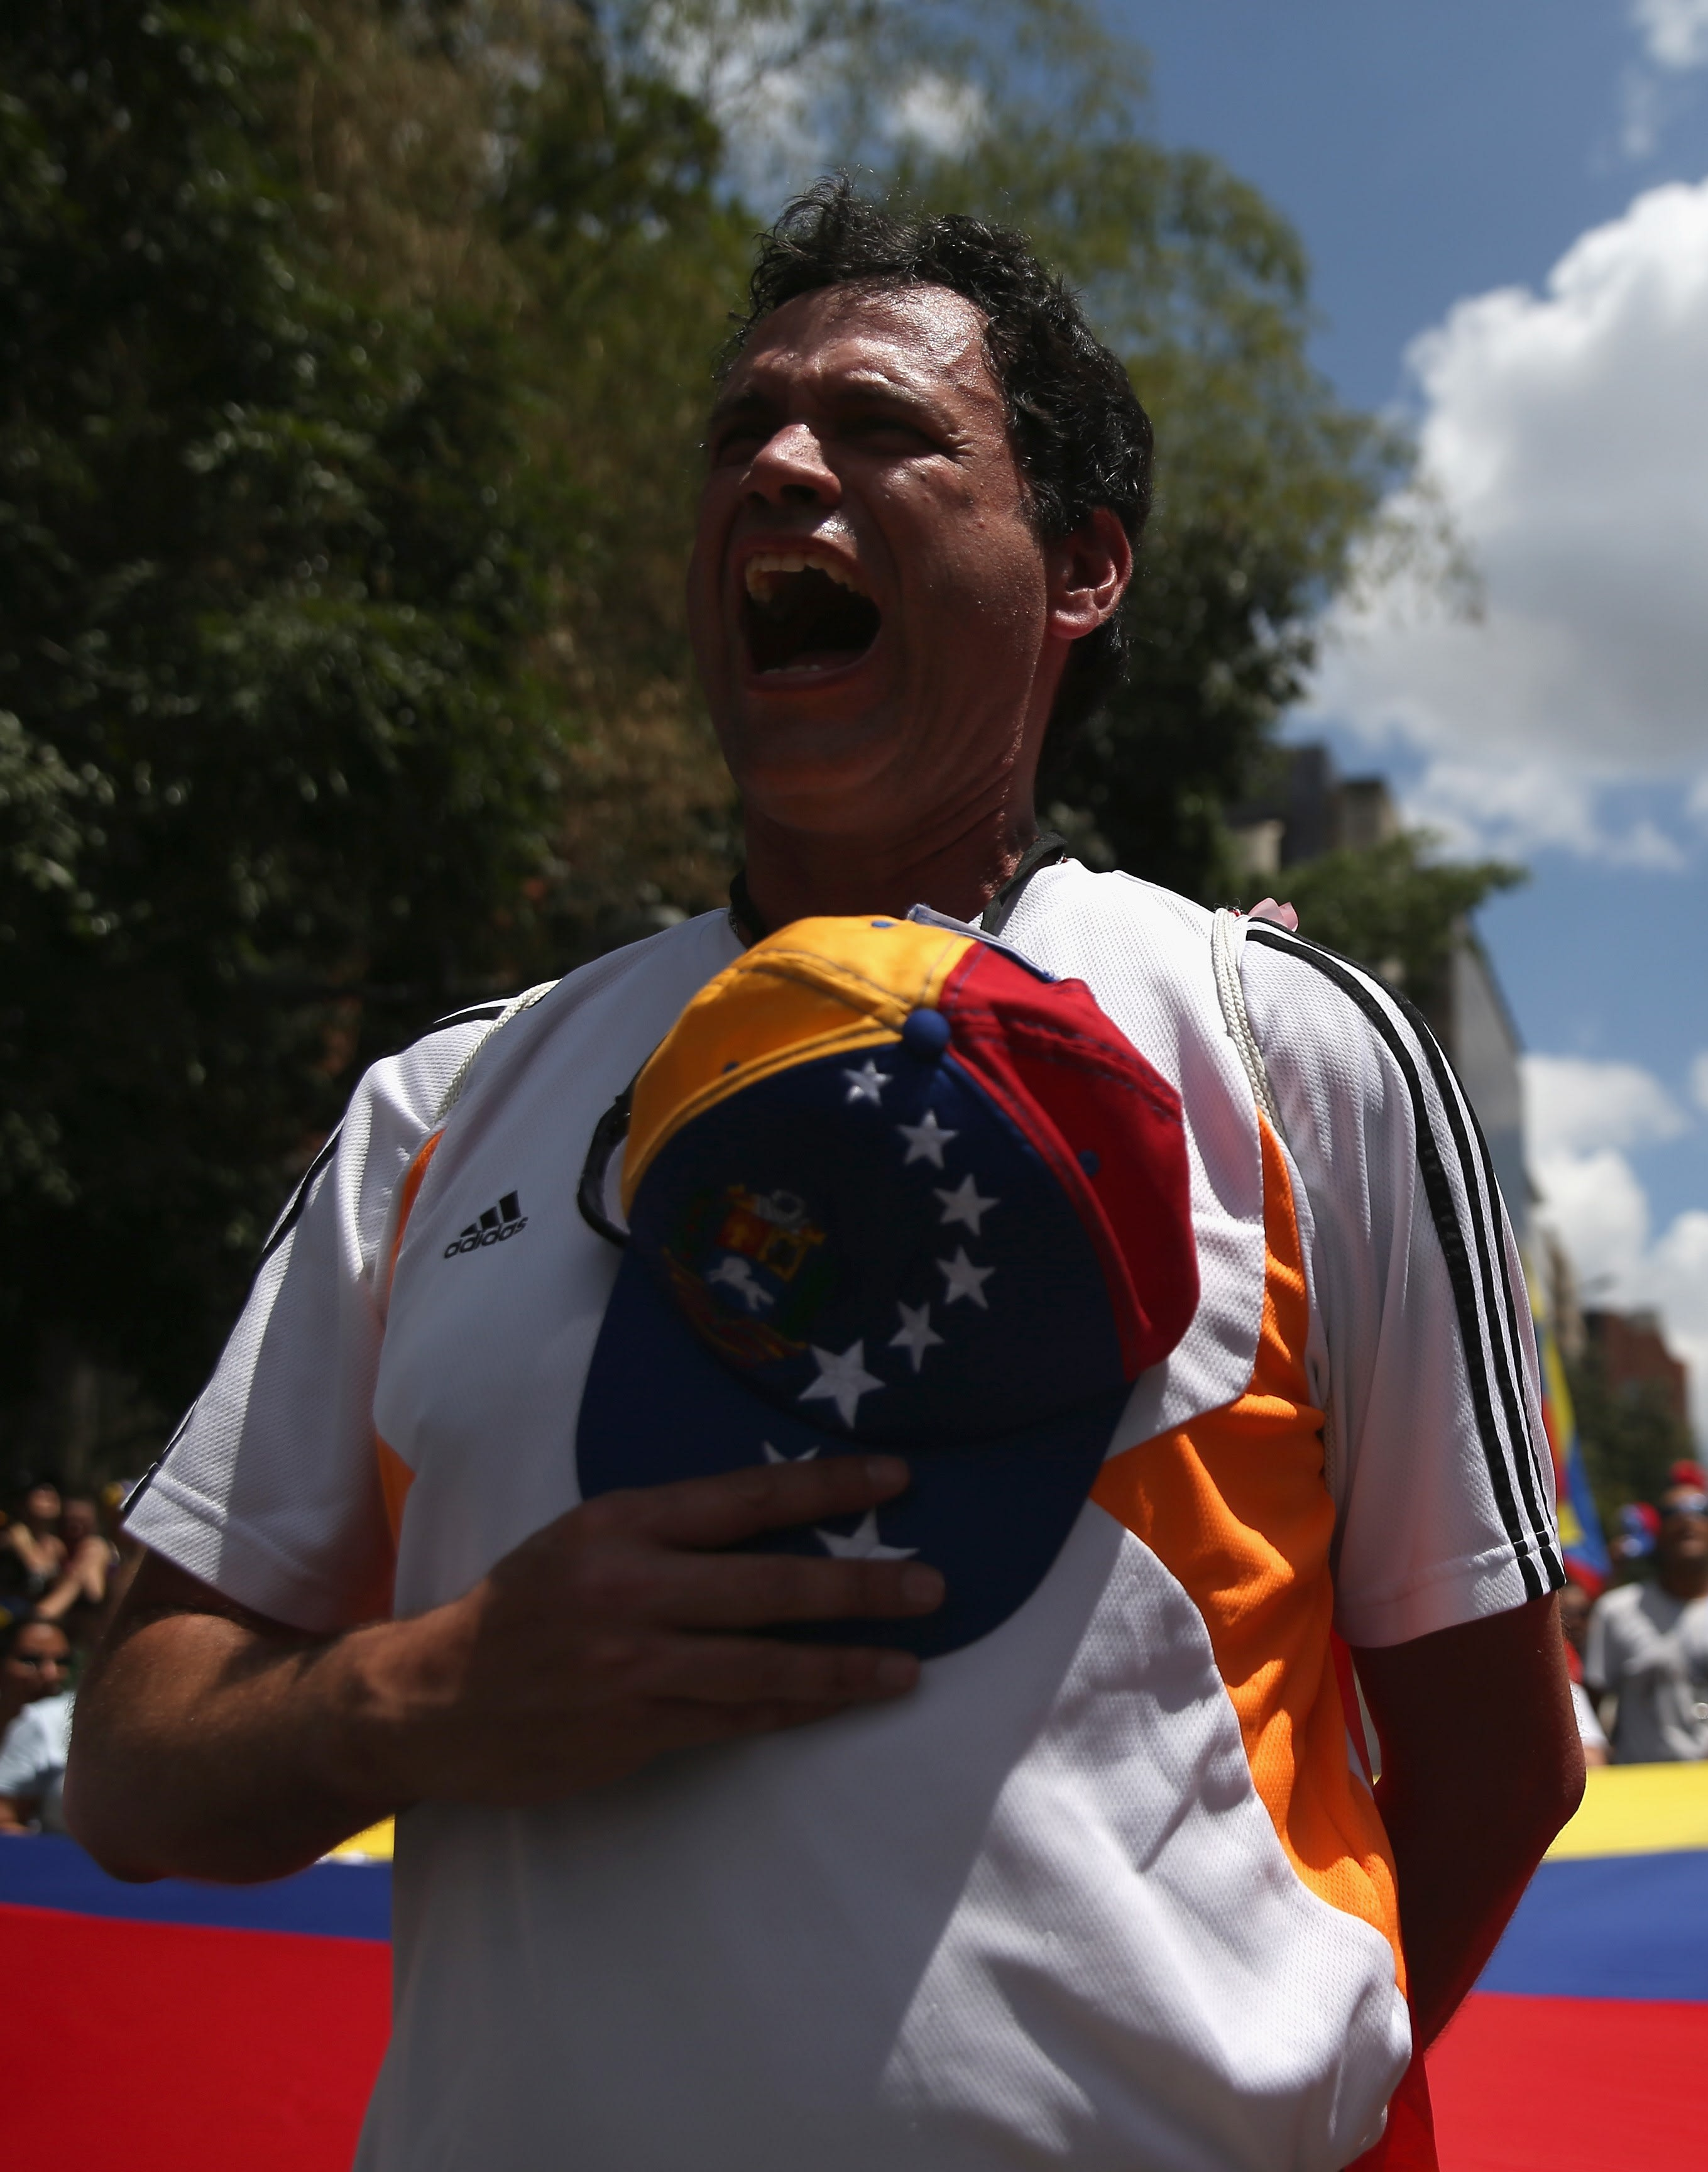 Protesters sing the Venezuelan national anthem during an anti-government demonstration, 2014 (Getty Images)